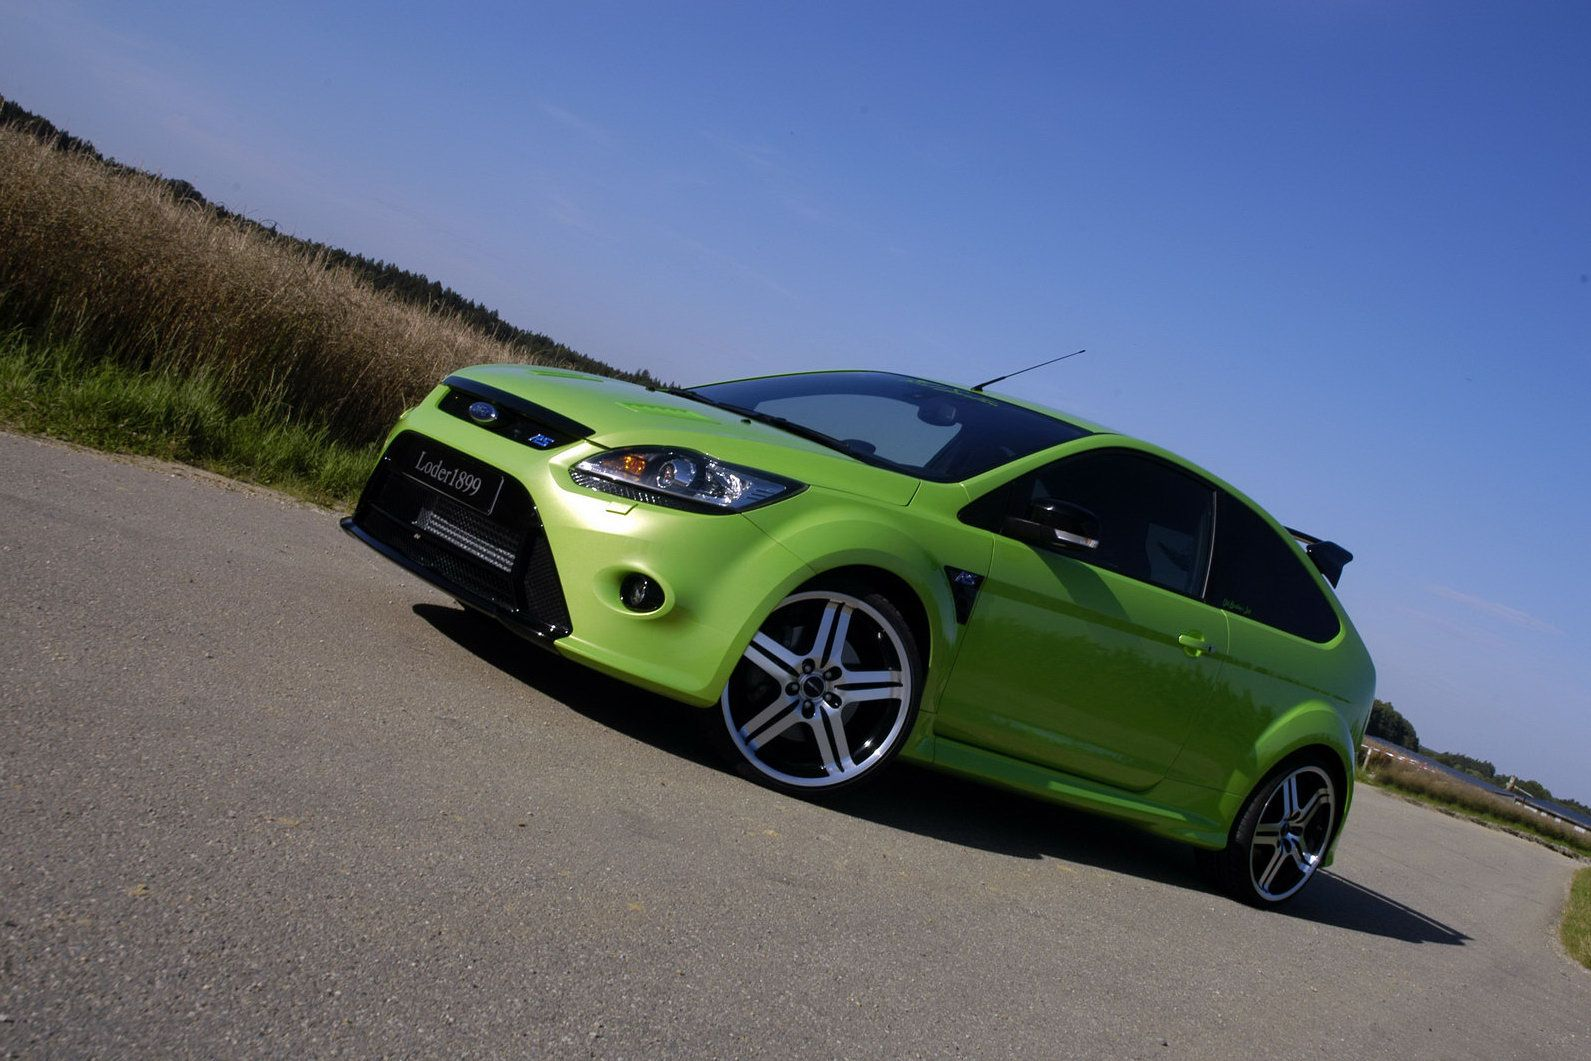 tuning loder1899 heats up the new ford focus rs photos it s your auto world new cars. Black Bedroom Furniture Sets. Home Design Ideas